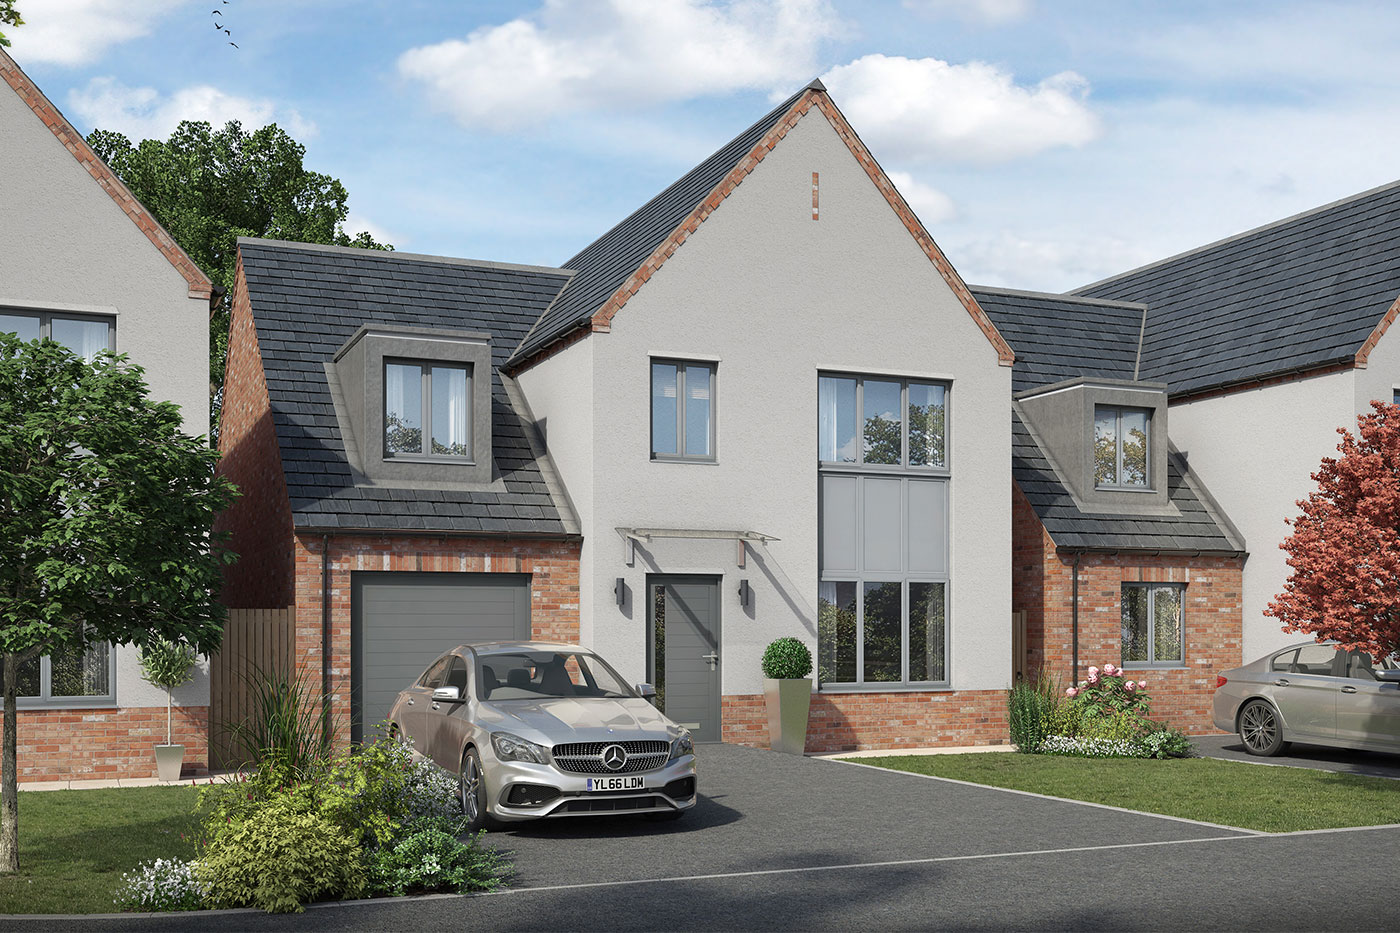 4 bedroom house Lincolnshire